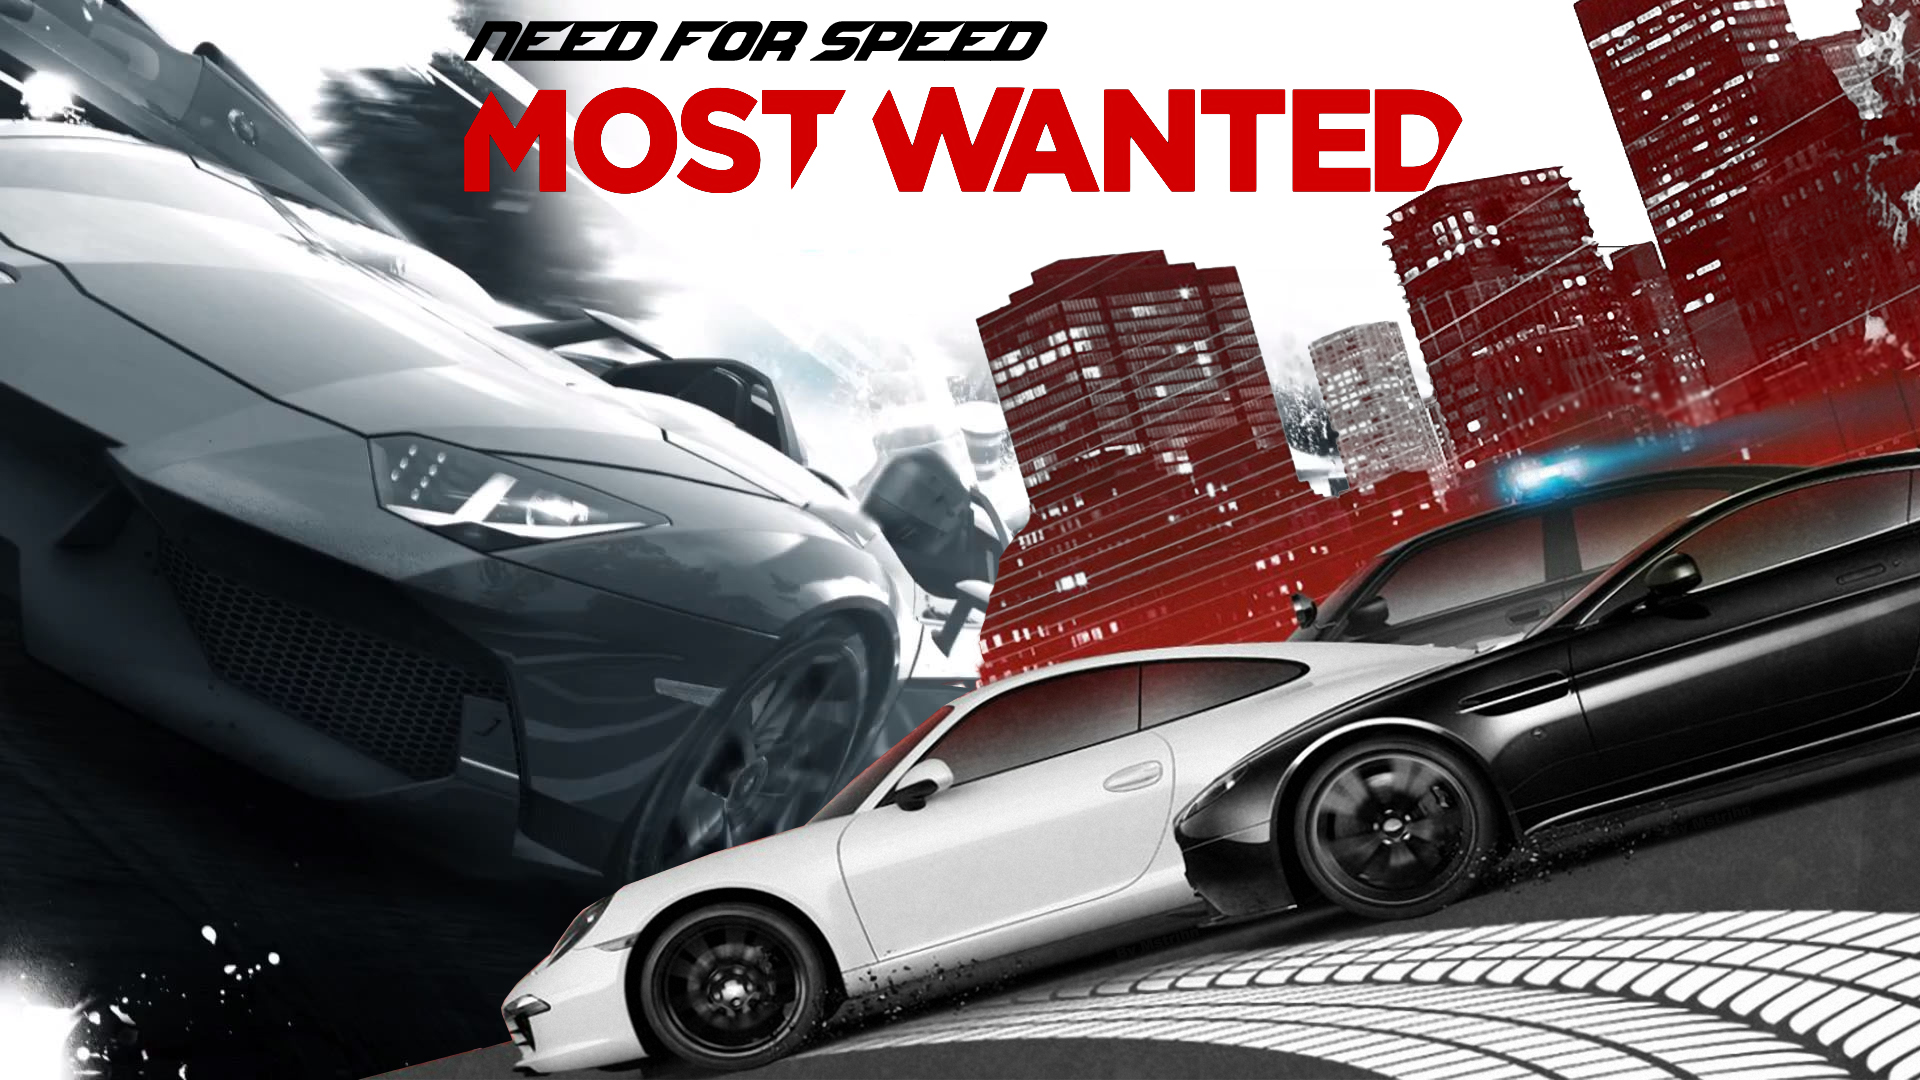 Need for Speed Most Wanted (2012) Free Download